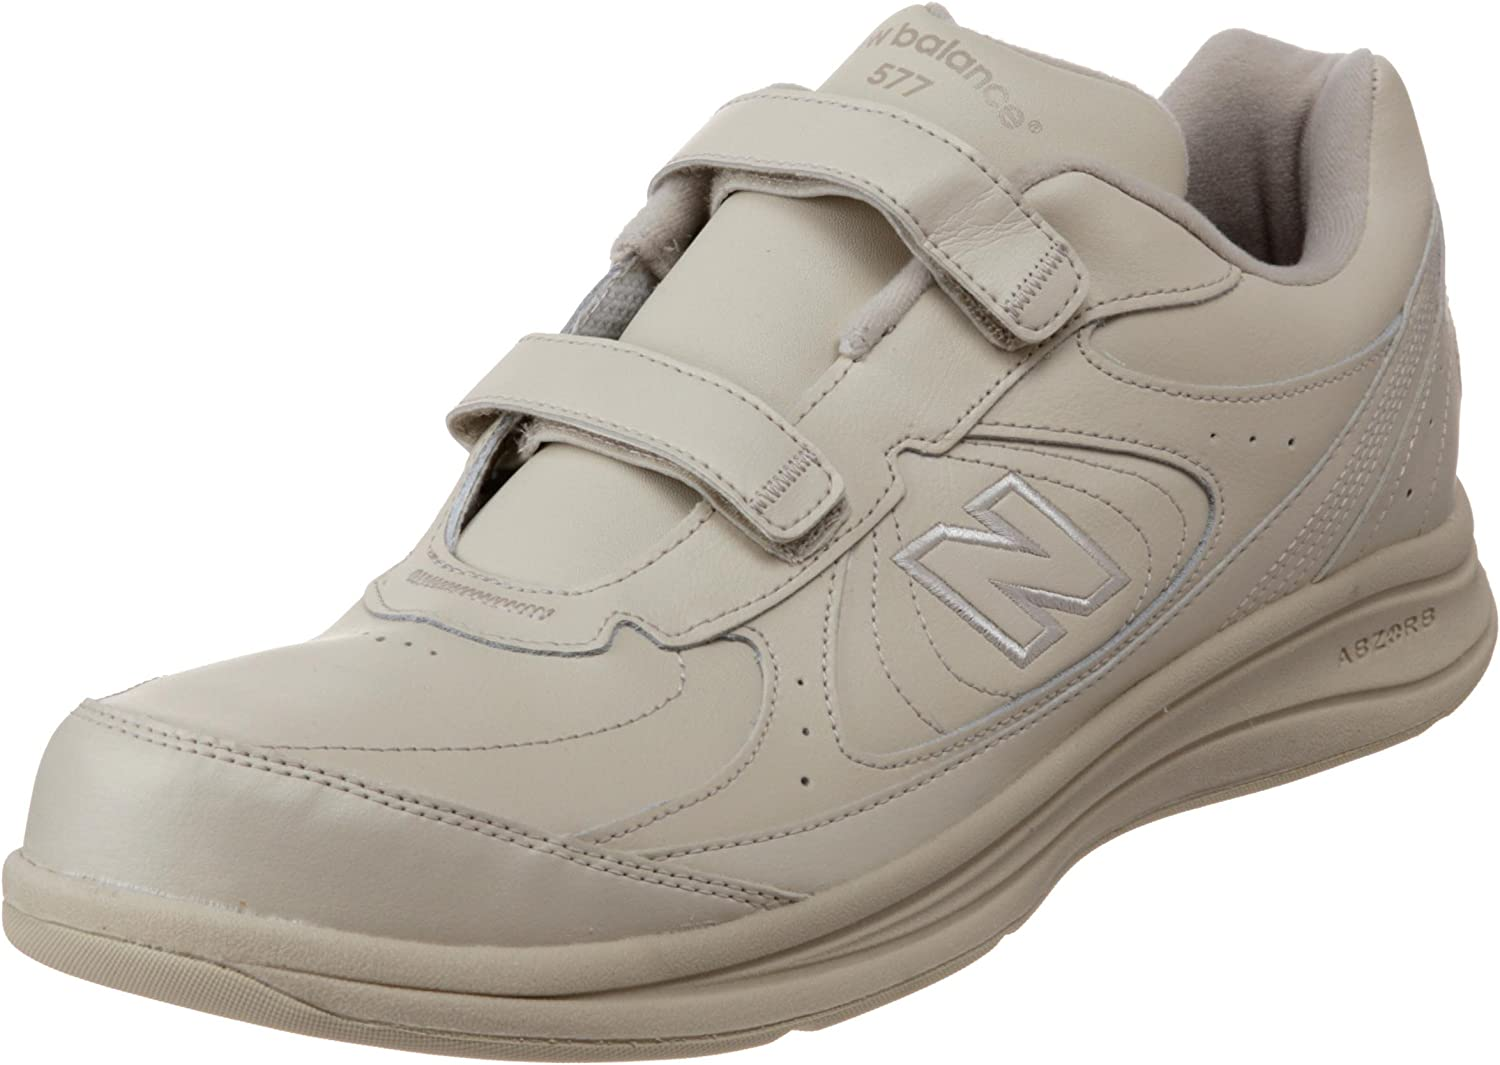 New Balance Men's MW577 Hook and Loop Walking shoes